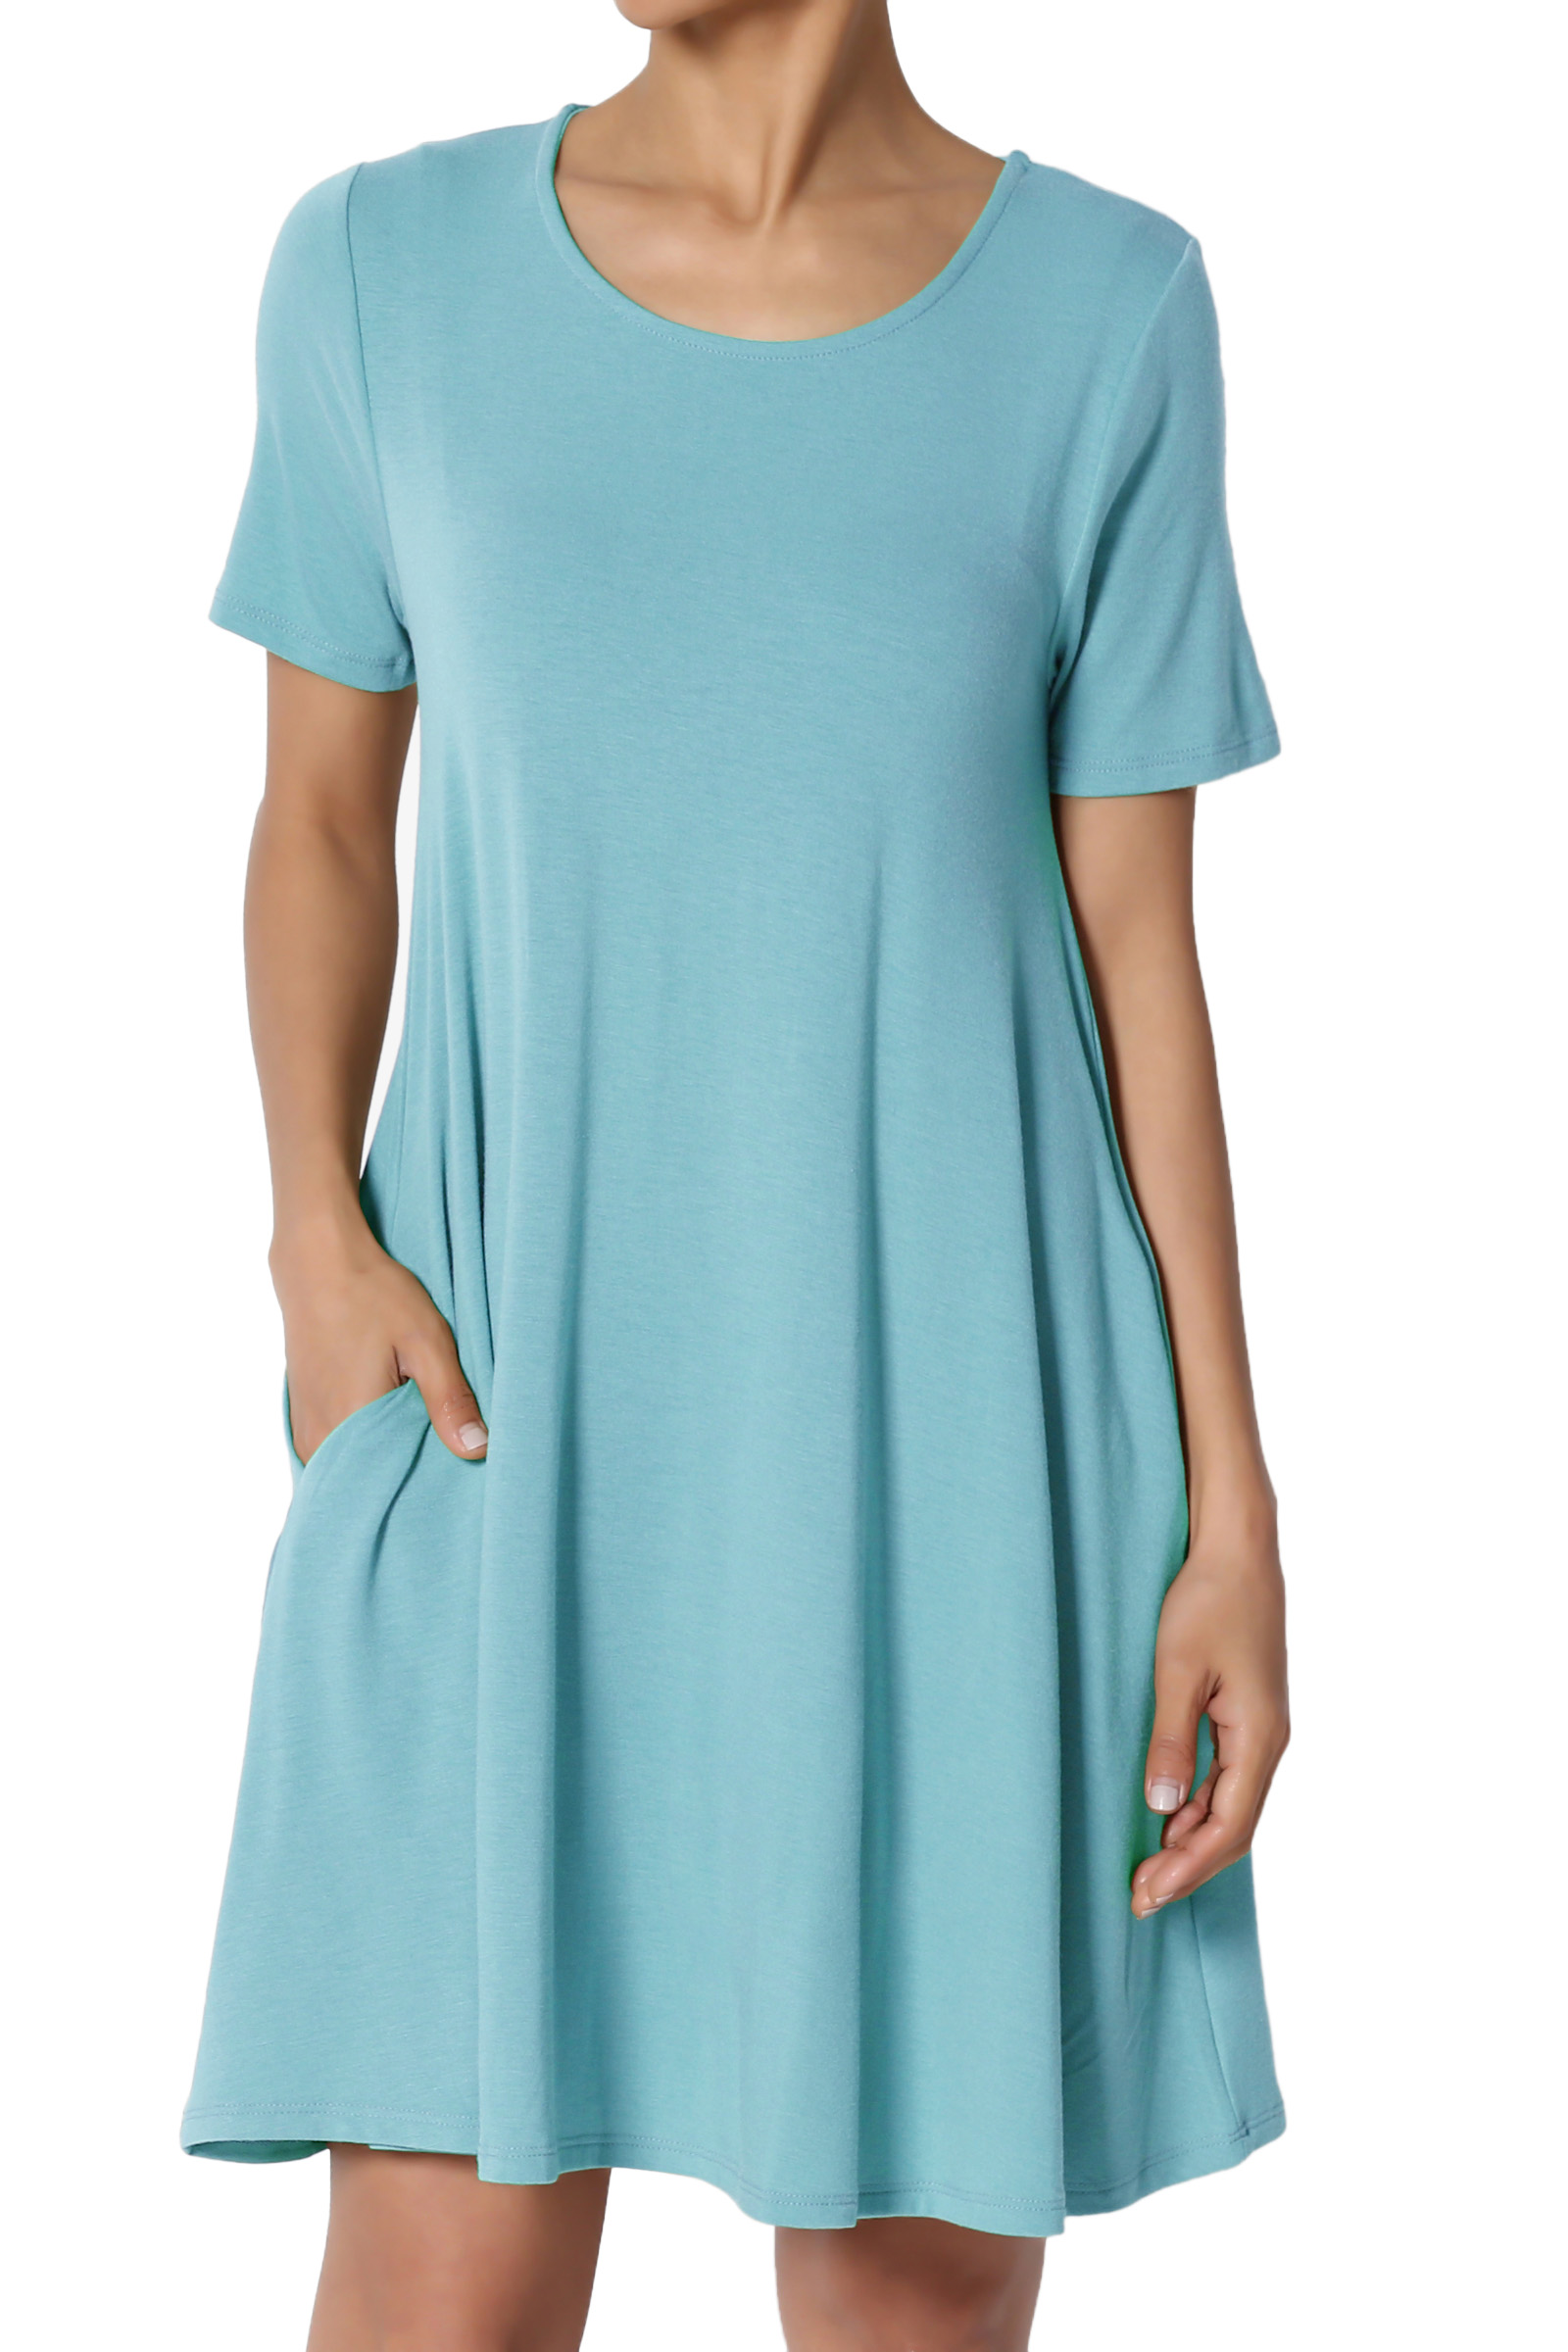 TheMogan Women's S~3X Short Sleeve Round Neck Pocket Flared A-Line Long Tunic Top